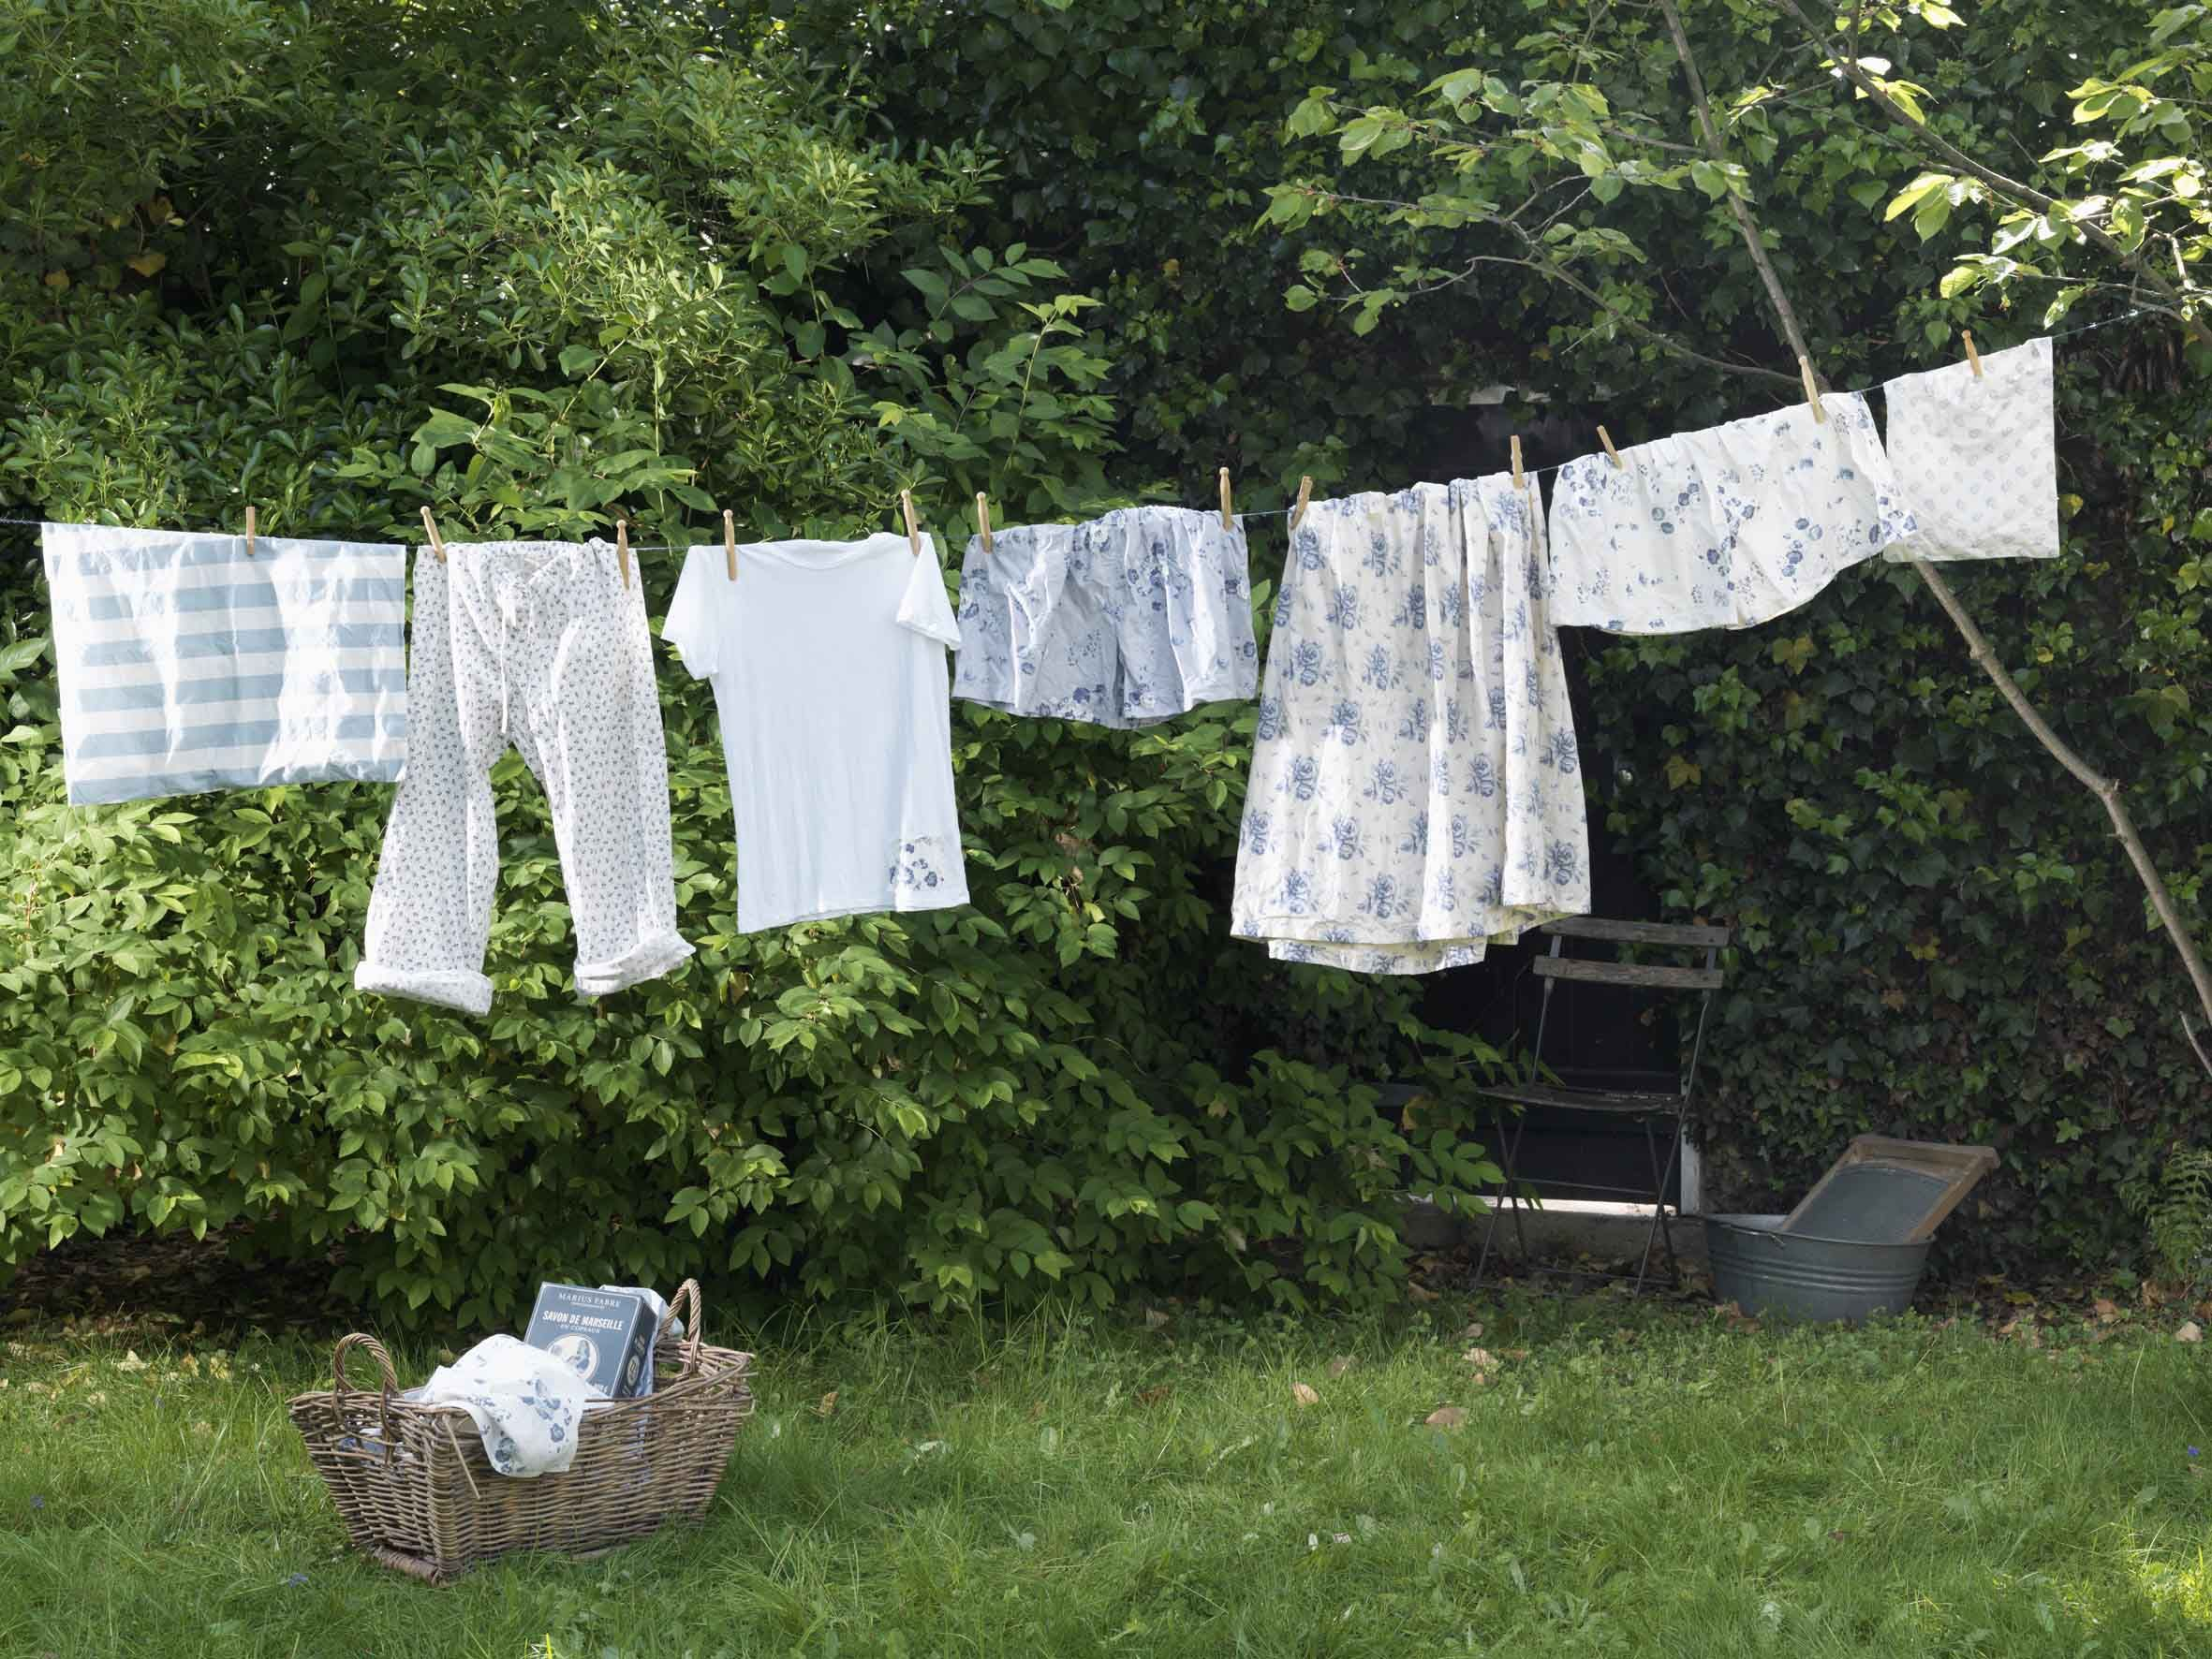 Quotes about love paper napkins never return from a laundry nor - Awe The Smell Of Freshly Line Dried Clothes Outside Mom Hung Out All The Time